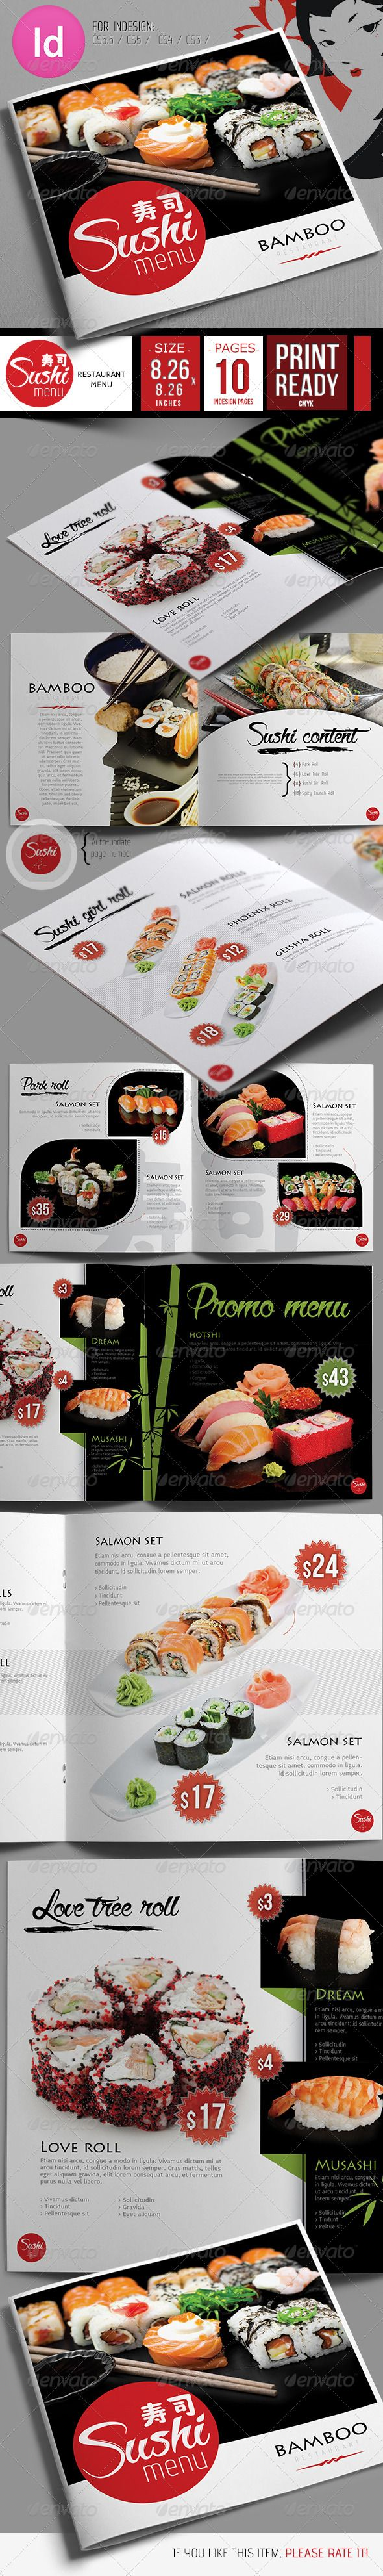 Fresh Sushi Restaurant Menu Template #design #speisekarte Download: http://graphicriver.net/item/fresh-sushi-restaurant-menu/7921728?ref=ksioks